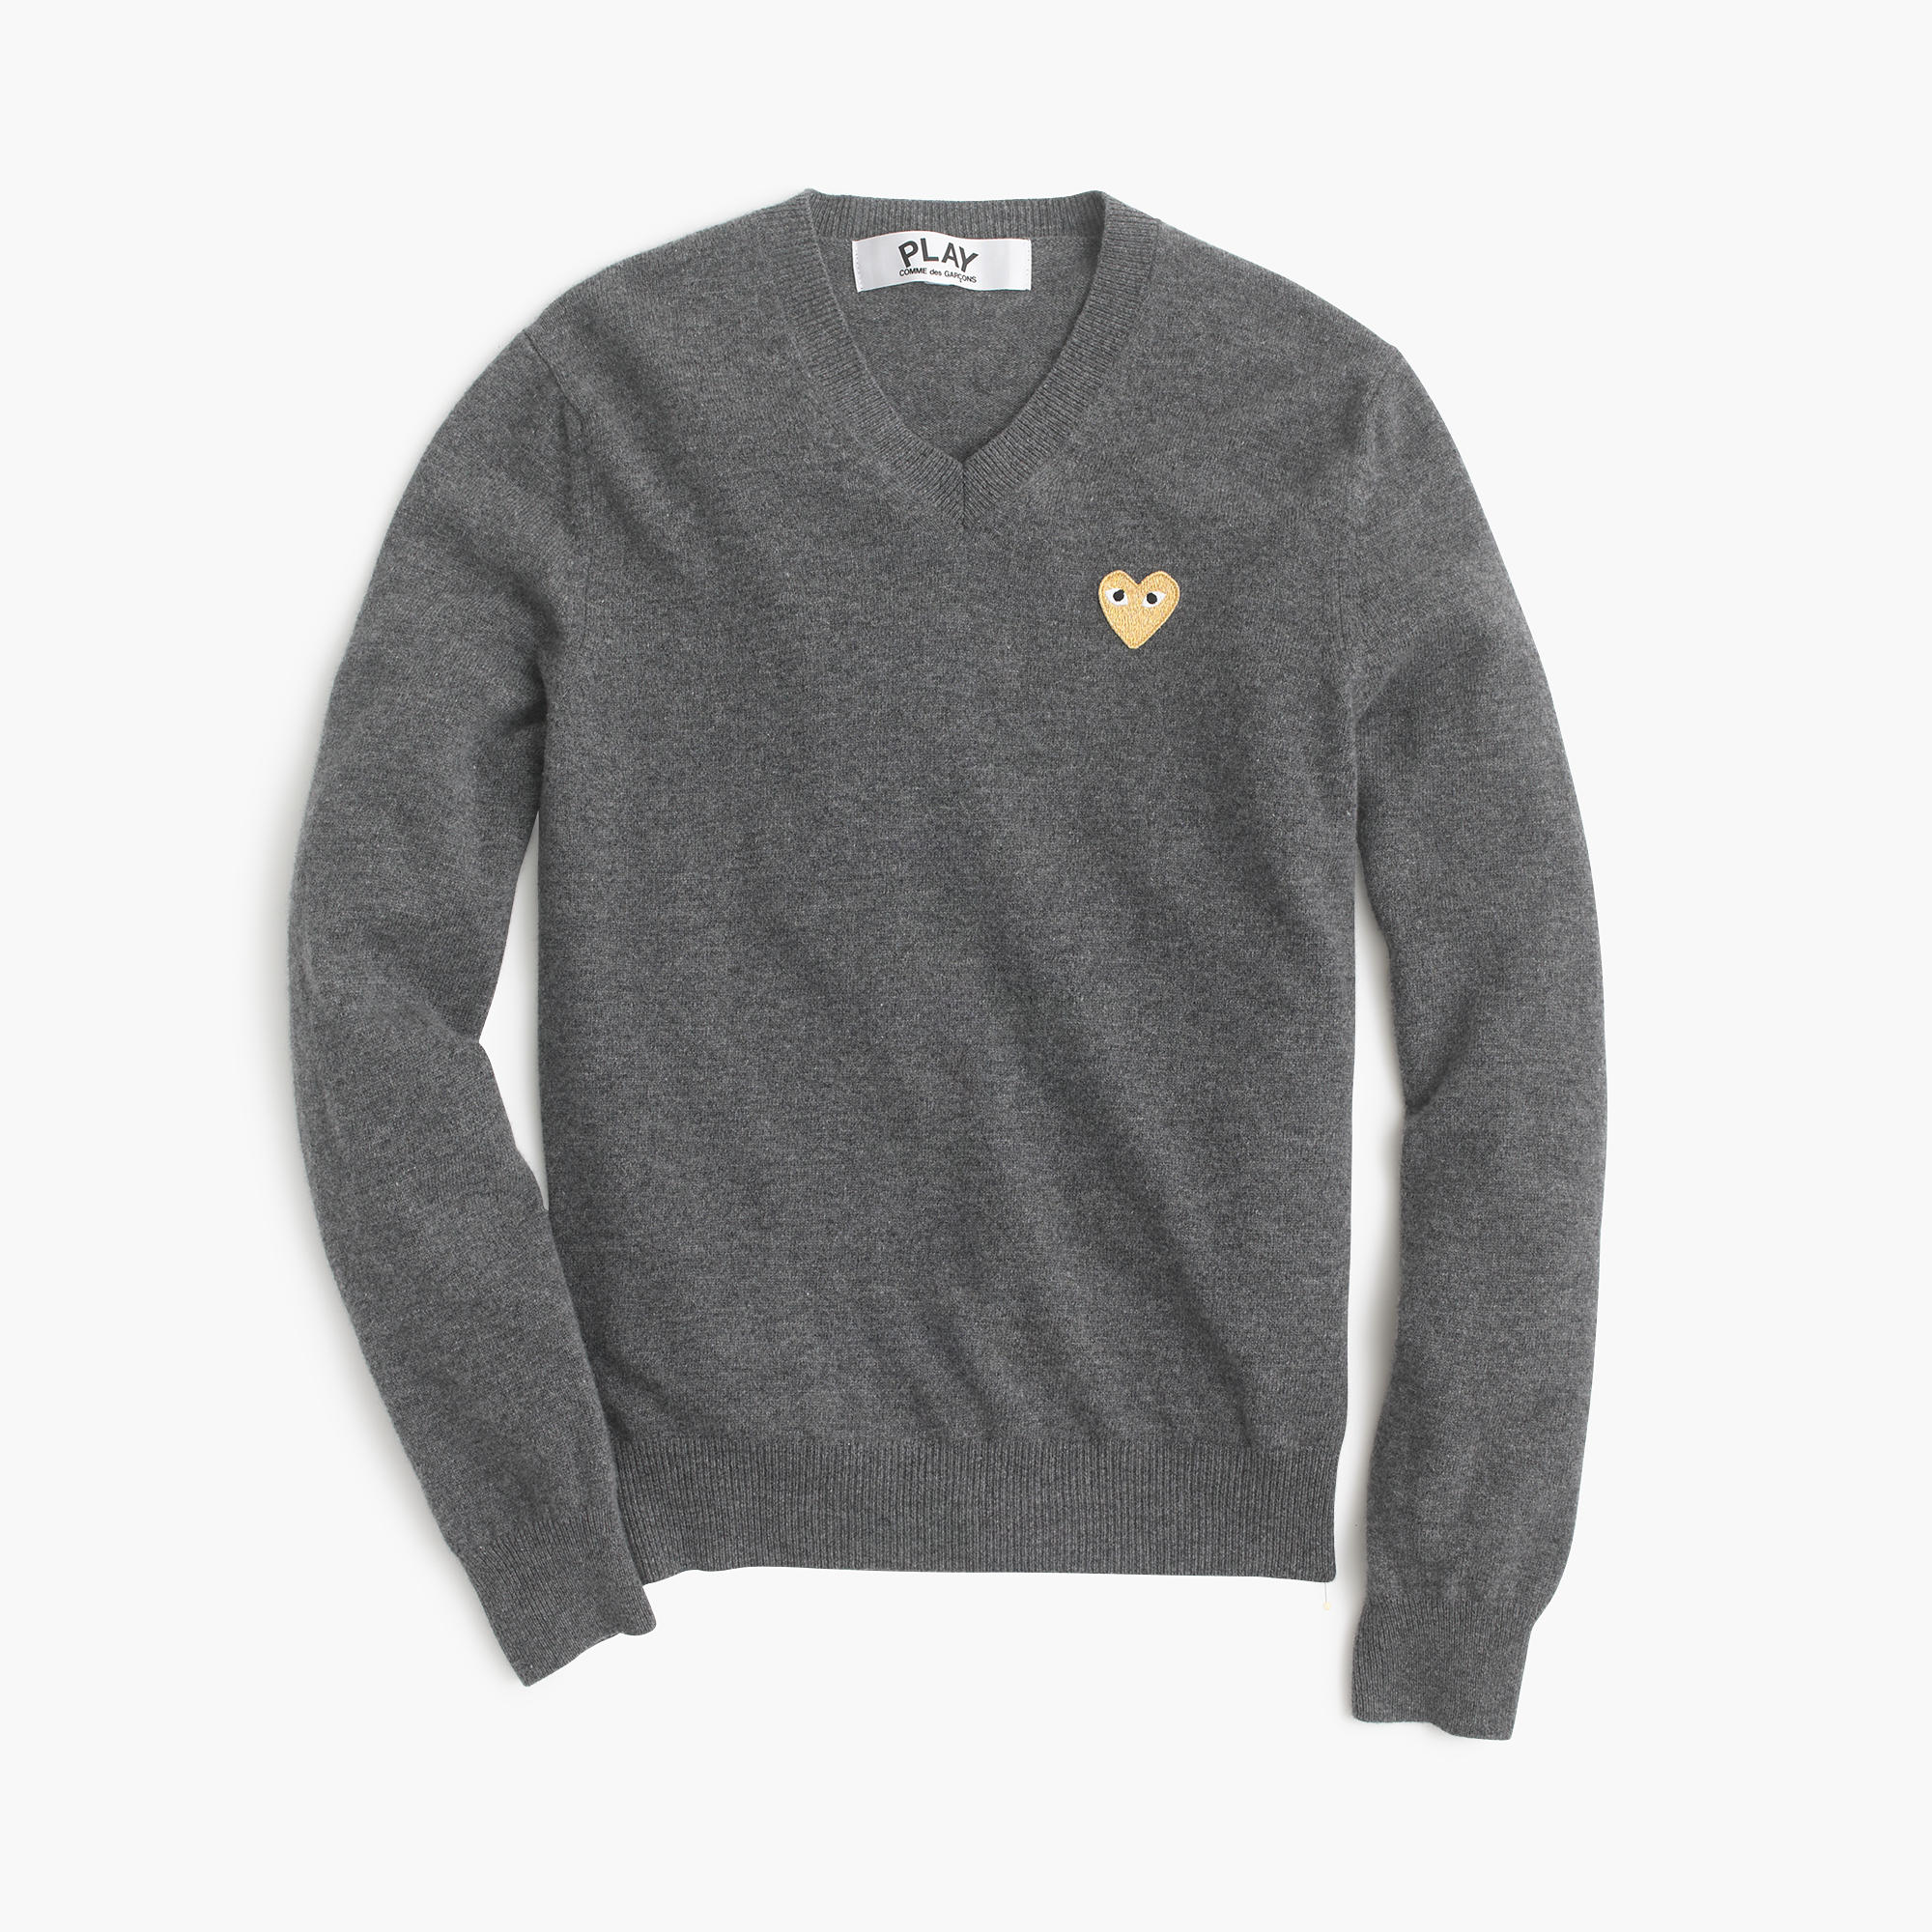 J.crew Play Comme Des Garçons V-neck Sweater With Gold Heart in ...